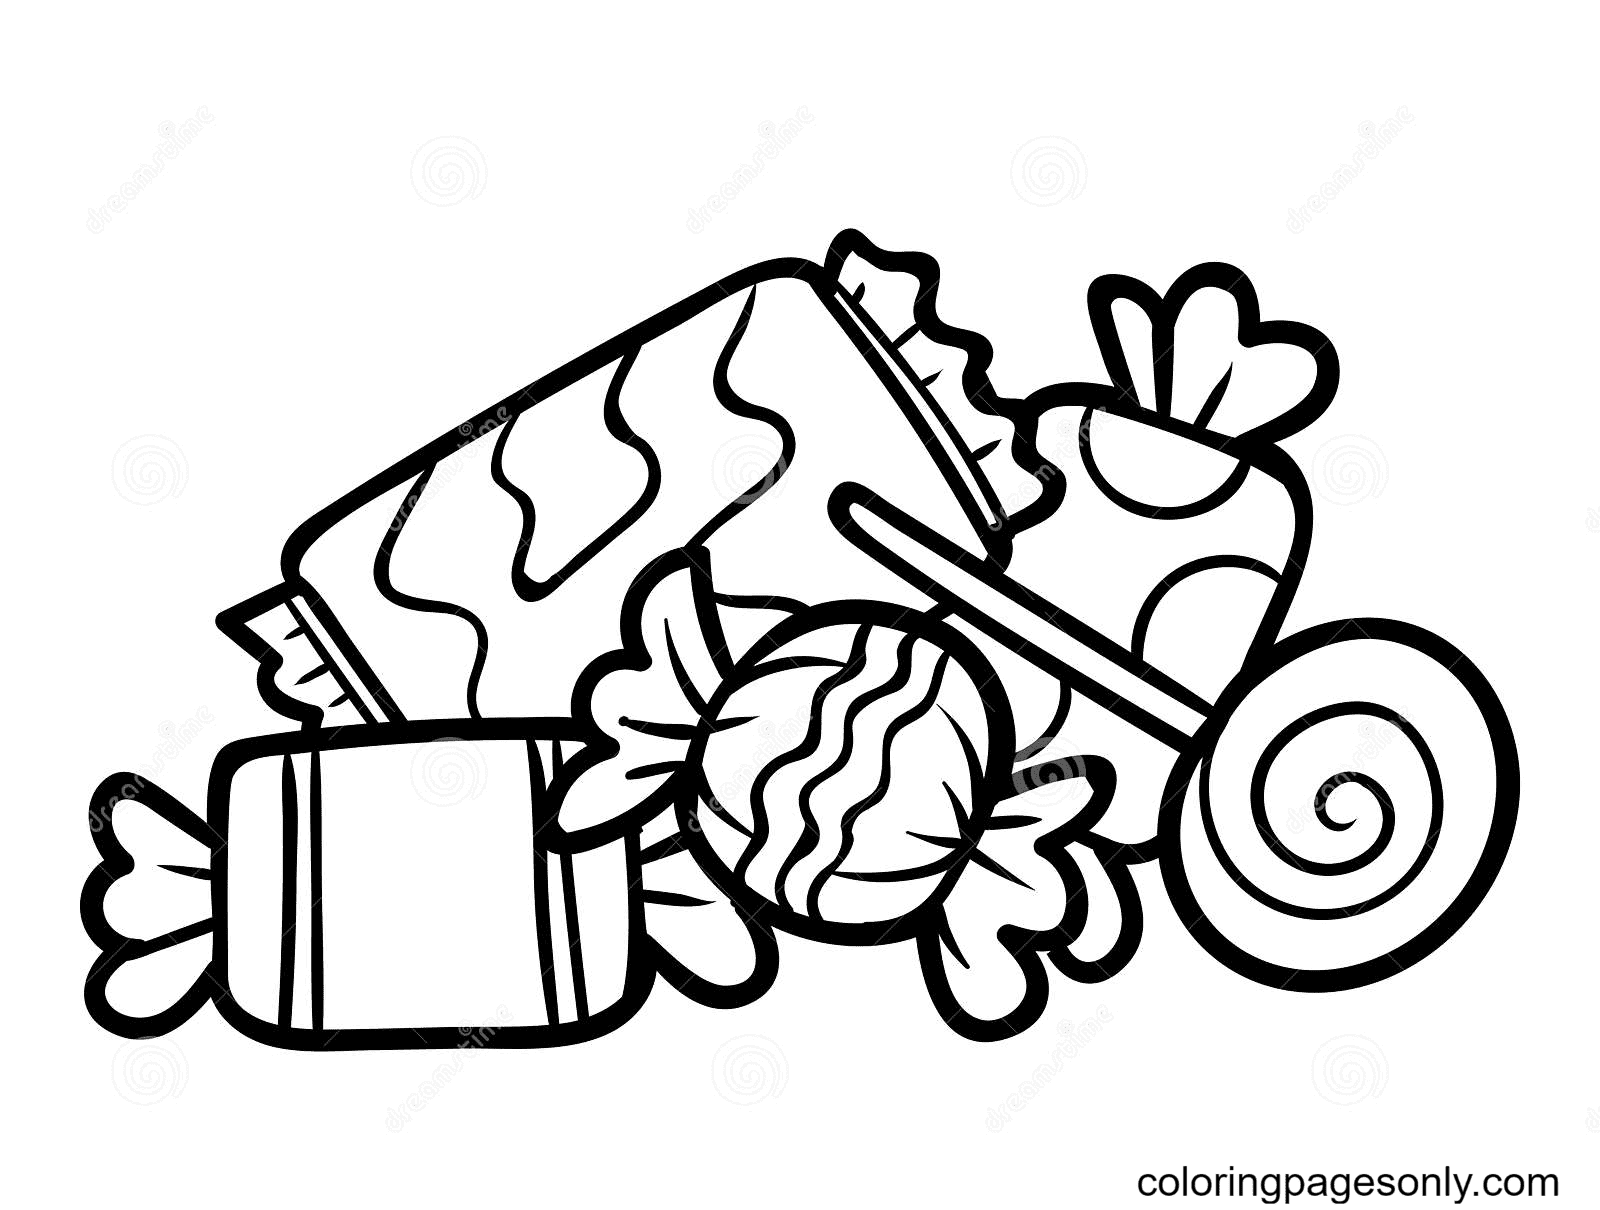 Printable Candies Coloring Page